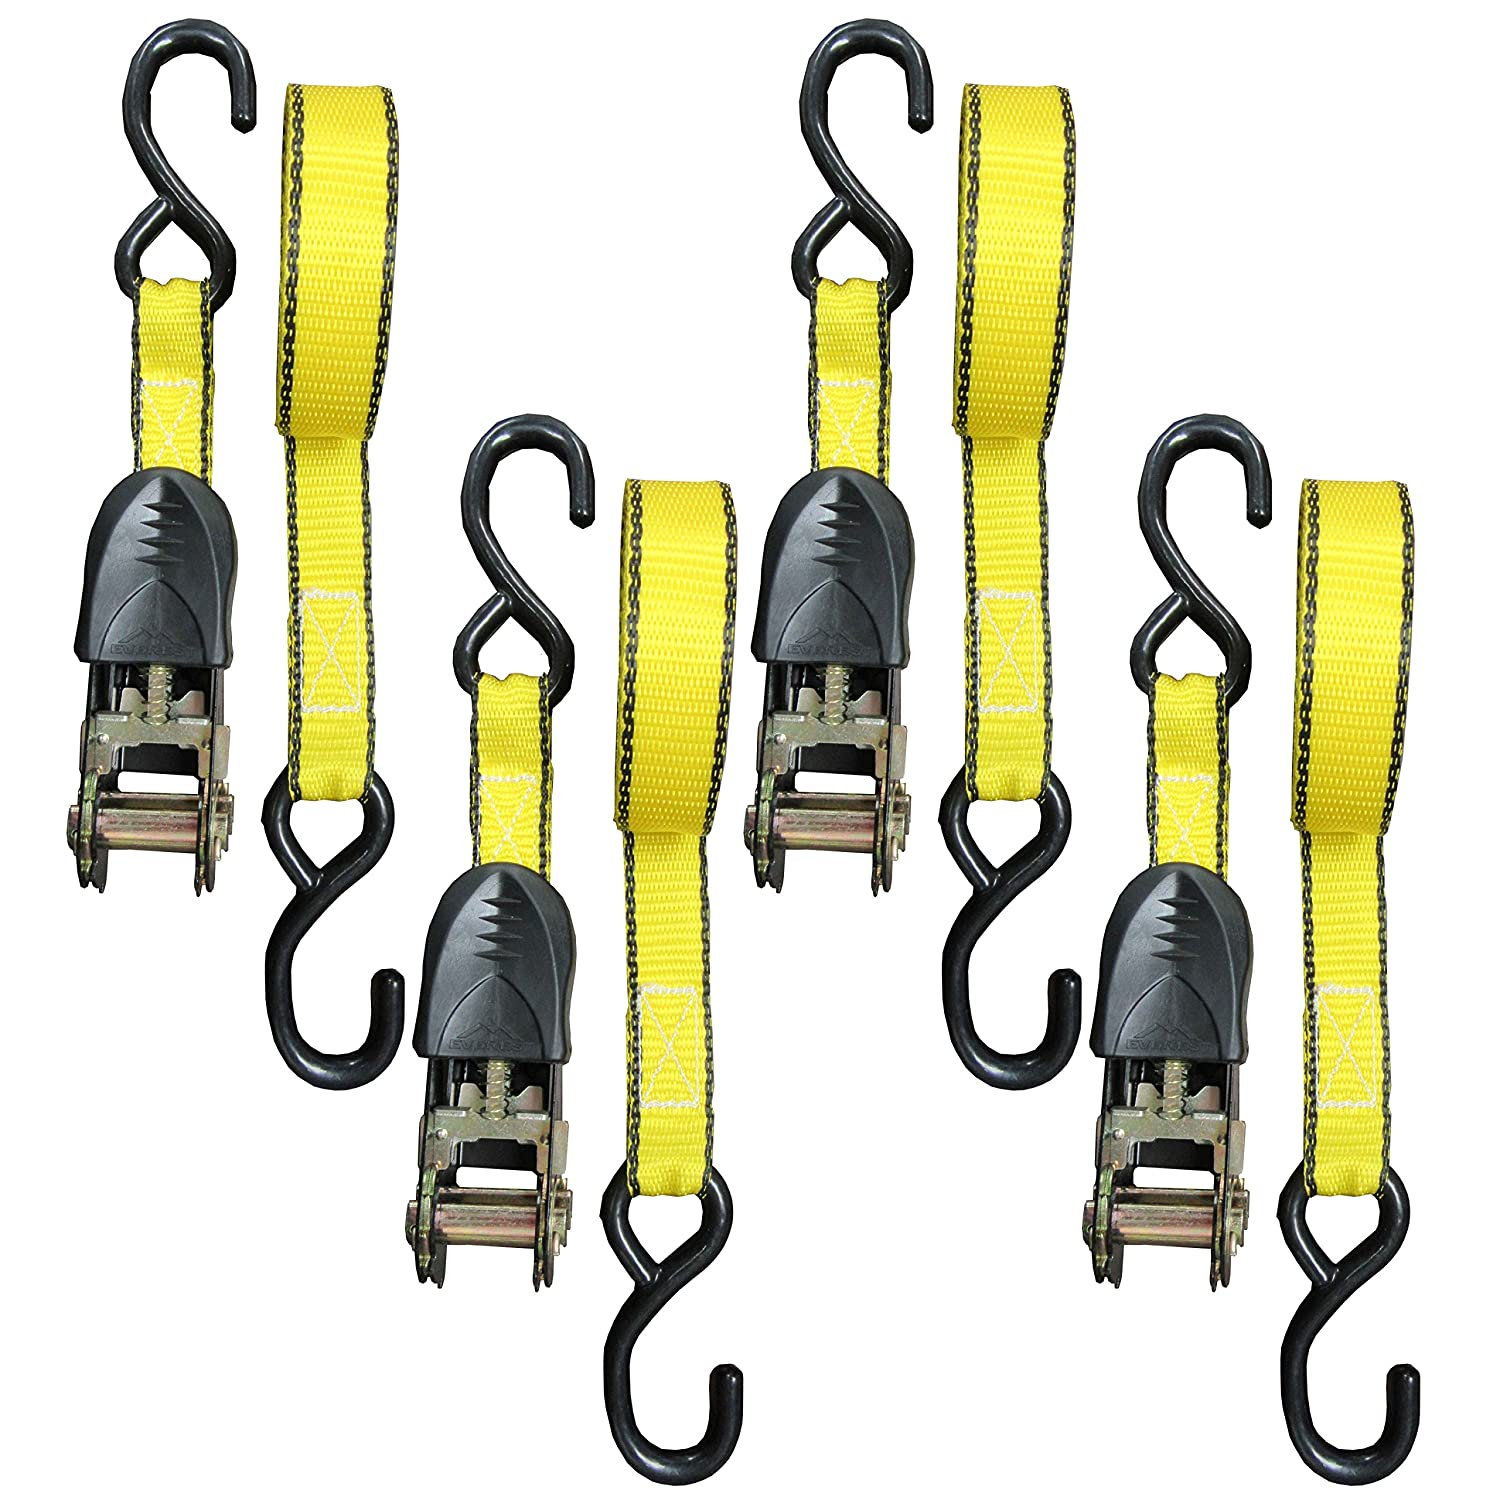 15 Feet 1 Inch Cargo Straps Perfect for Moving Appliances Motorcycle Lawn Equipment 1500 LB Break Strength 4 Pack 500 LBS Working Load Ratchet Tie Down Strap ATV by Everest Cam buckle Alternative